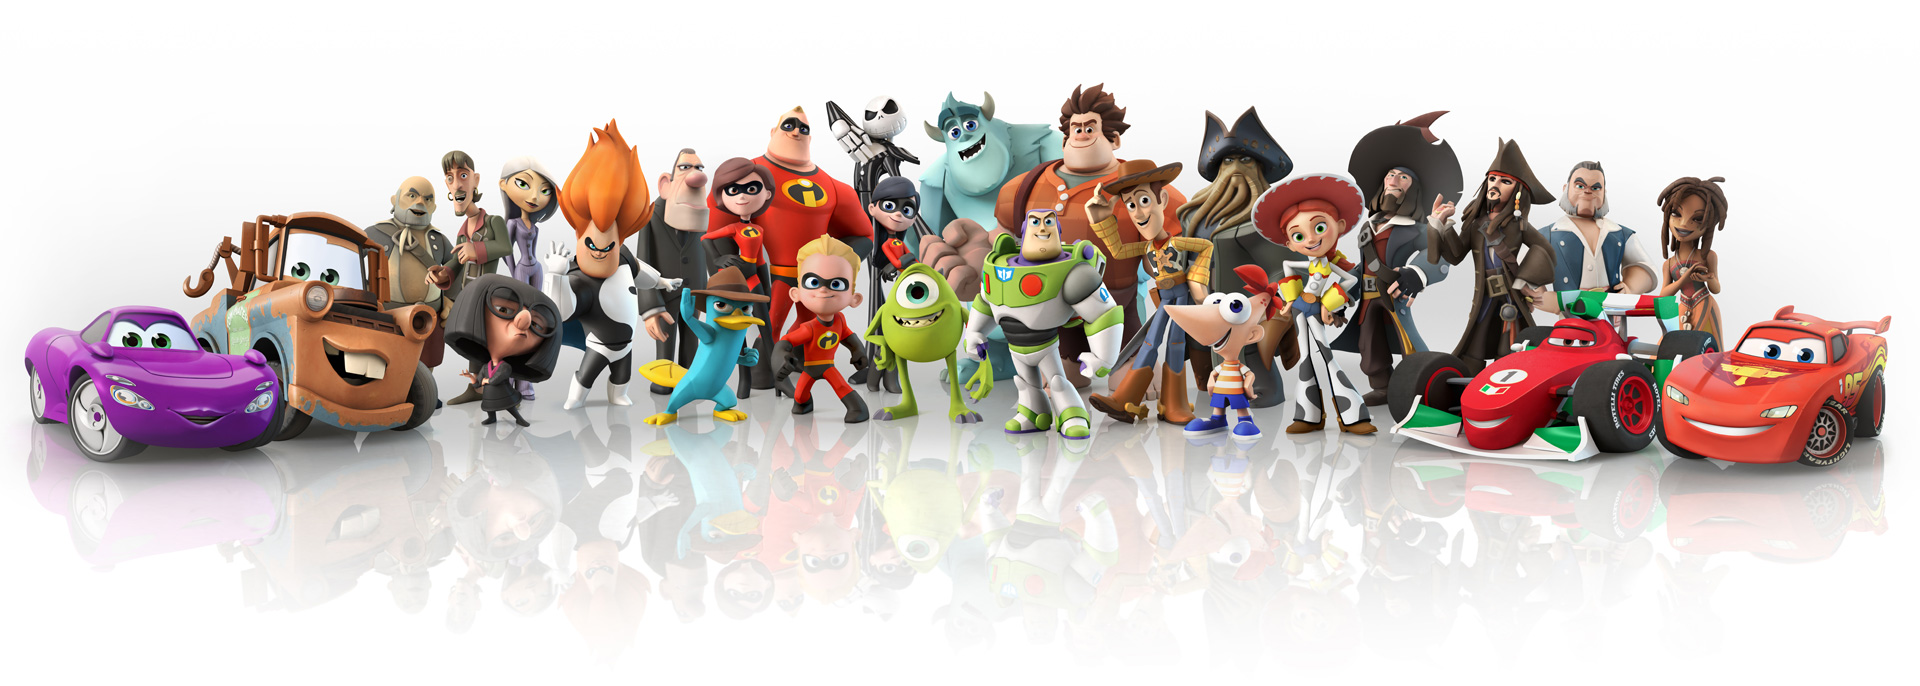 10 Strategies For Changing Company Culture... To Infinity and Beyond!